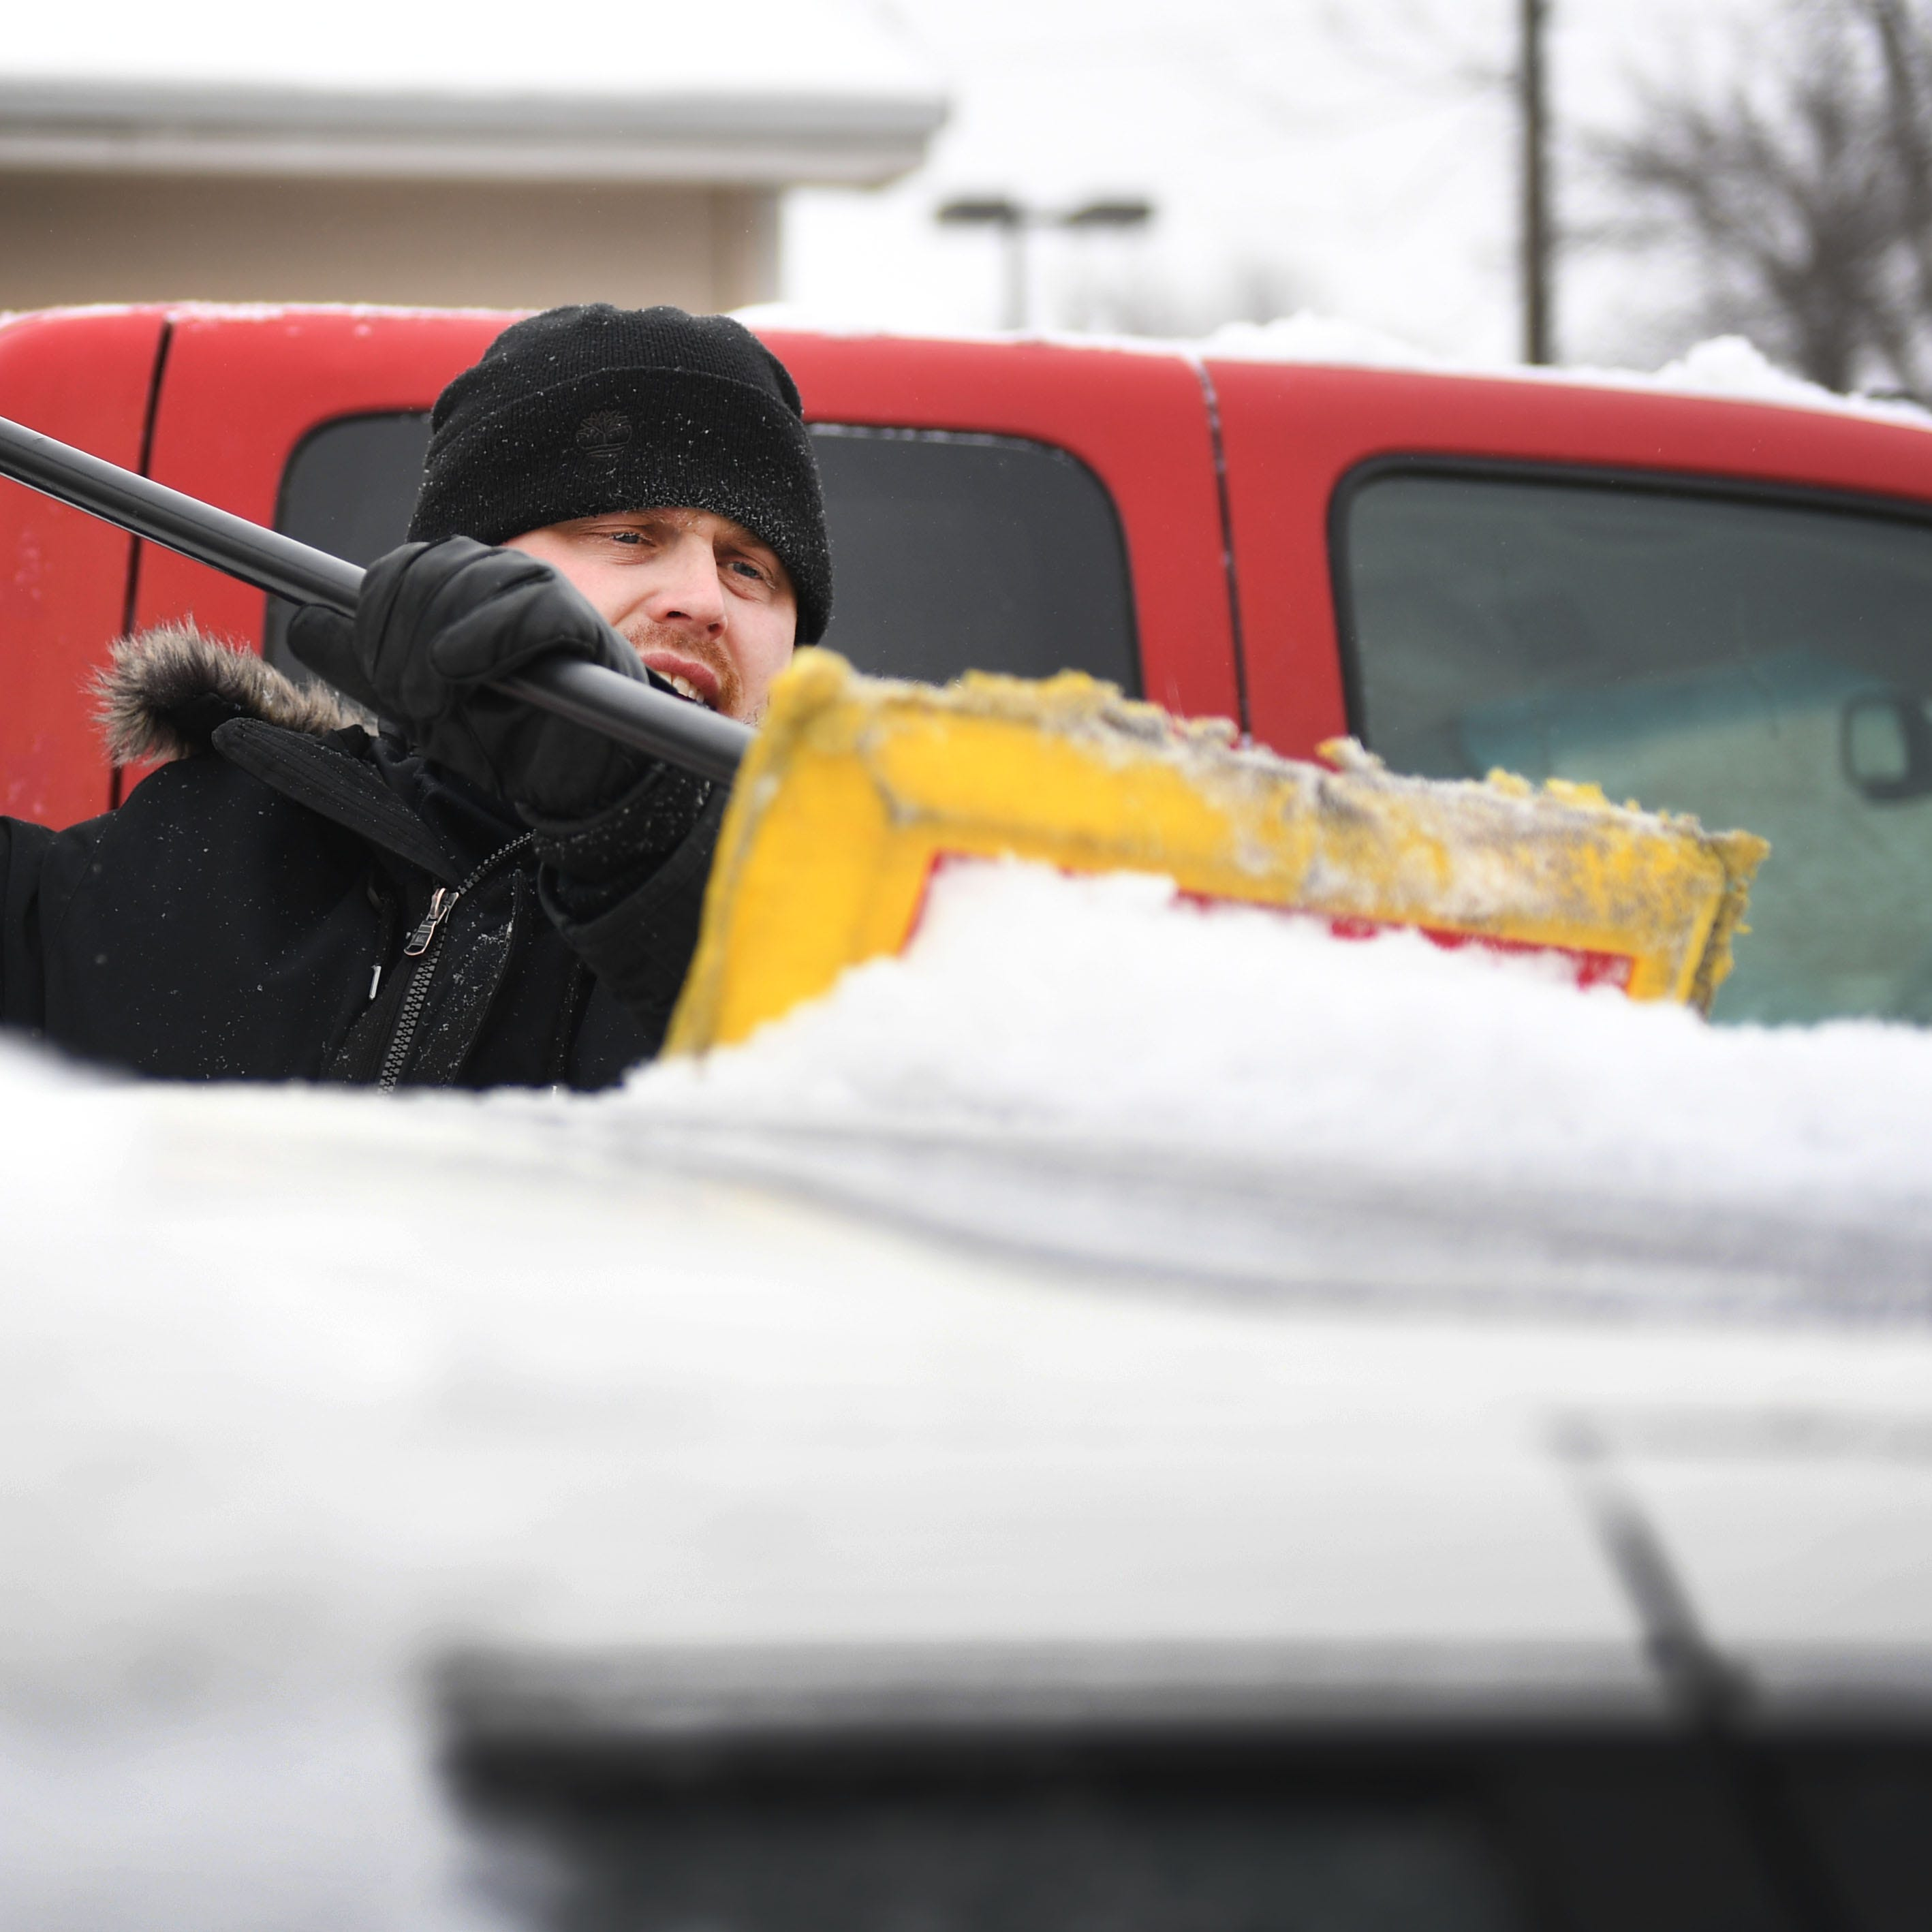 Jonathan Leise, management at Imperial Group, cleans the cars in the dealership's lot Thursday, Feb. 7, in Sioux Falls. Sioux Falls is under a blizzard warning until midnight.